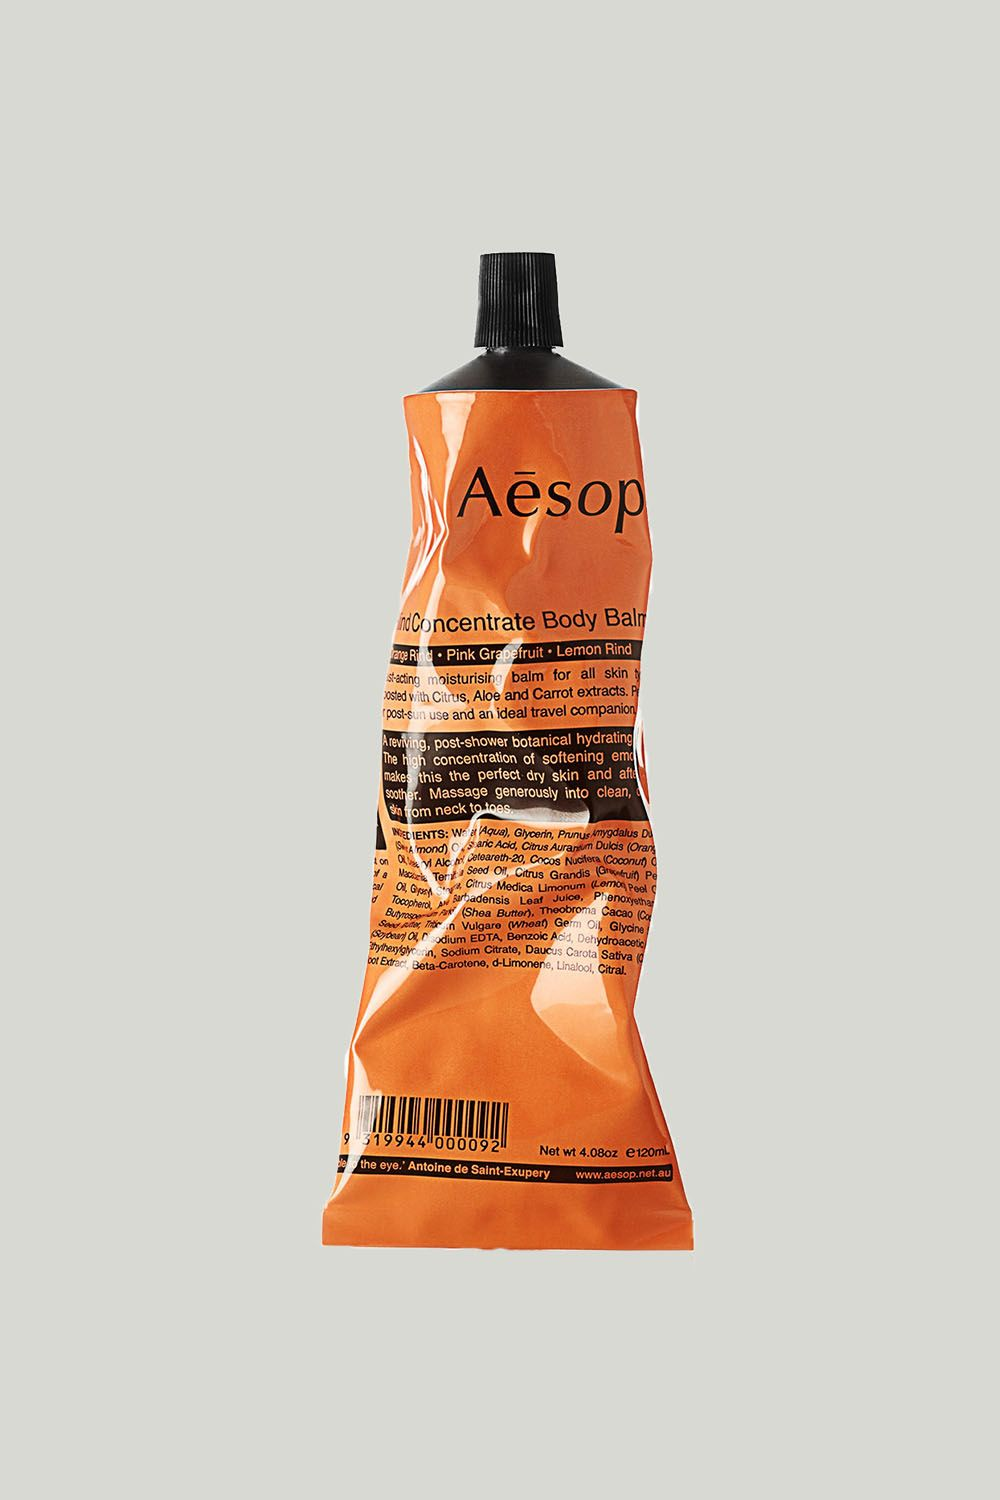 "<p><span class=""redactor-invisible-space"" data-verified=""redactor"" data-redactor-tag=""span"" data-redactor-class=""redactor-invisible-space"">For itchy dry spots, pat on Aesop's aloe vera-enriched body balm that smells like an orange grove (though not in an overpowering way) and makes your skin feel cool-to-the-touch after application. </span></p><p><strong data-redactor-tag=""strong"">$35&#x3B;&nbsp&#x3B;<a href=""https://www.net-a-porter.com/us/en/product/337112?cm_mmc=ProductSearchPLA-_-US-_-BathandBody-Aesop-Google&amp&#x3B;gclid=CjwKEAiAoOvEBRDD25uyu9Lg9ycSJAD0cnByasAqdbvk5xKrodEC74hWsTl0WGpdD3vu3zvLyi1-zBoCrSDw_wcB"" target=""_blank"" data-tracking-id=""recirc-text-link"">net-a-porter.com</a>.</strong></p>"